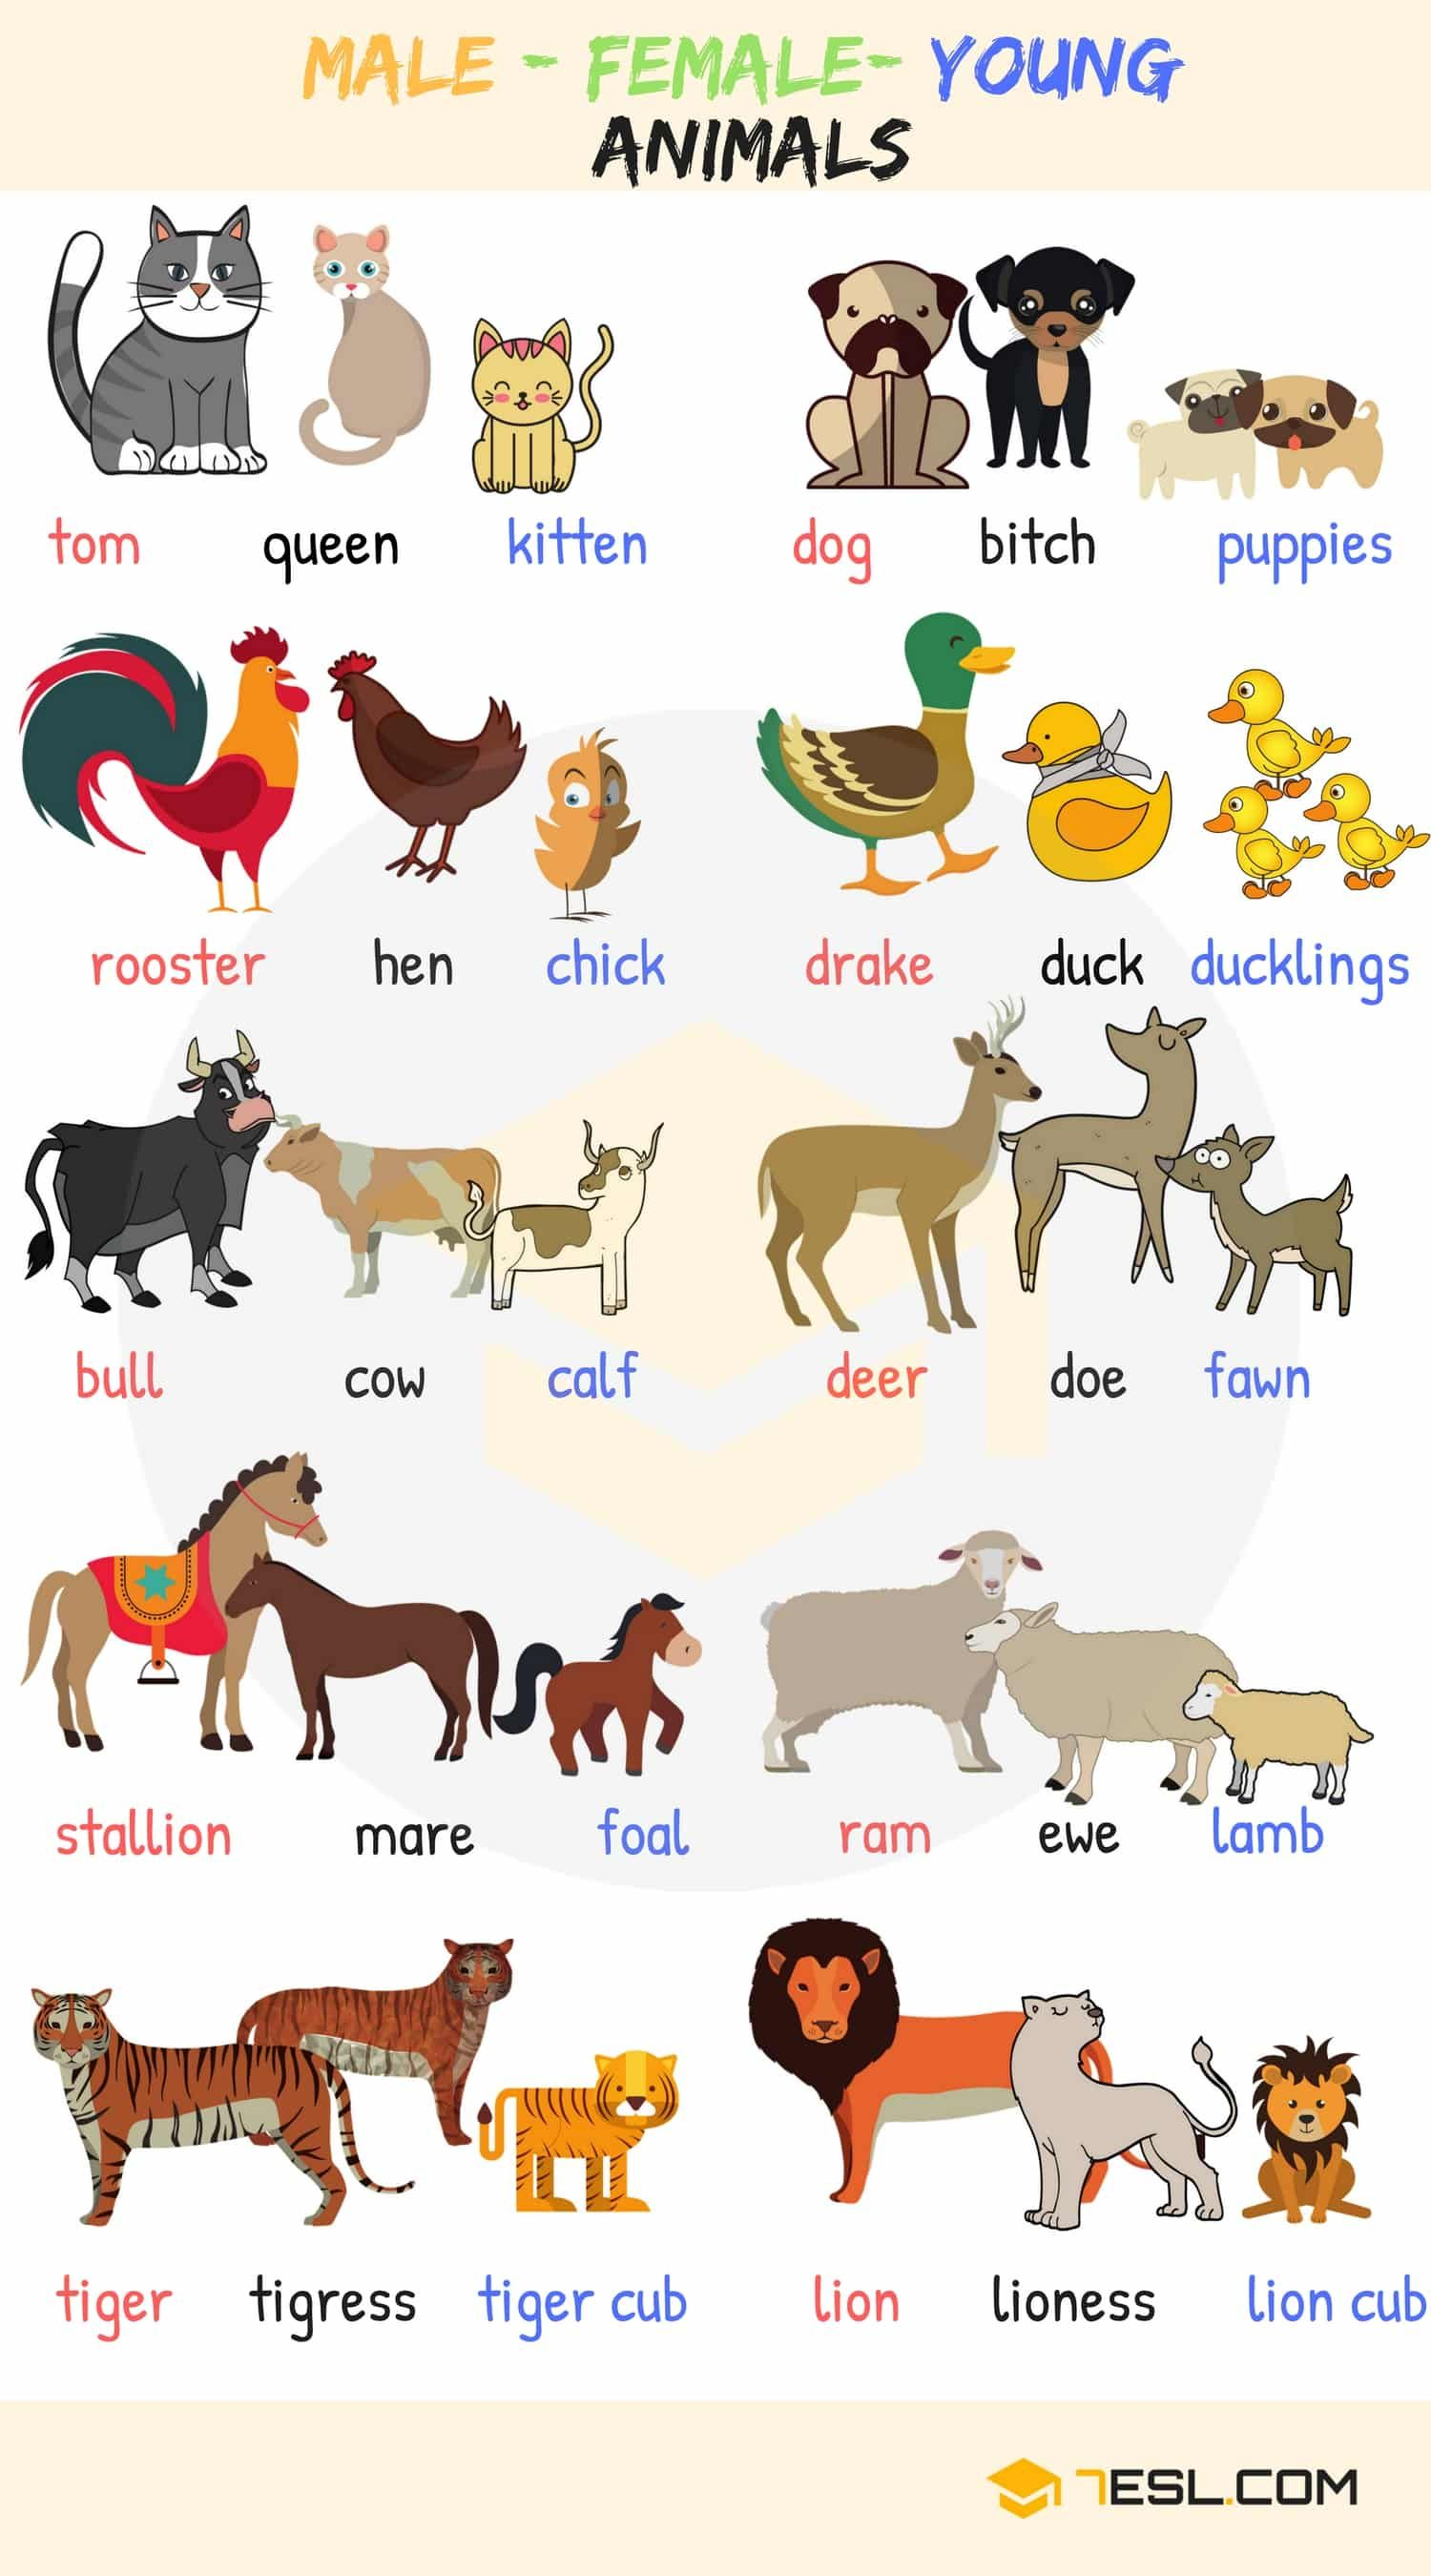 Animals name in english image by Pedro Tendero on